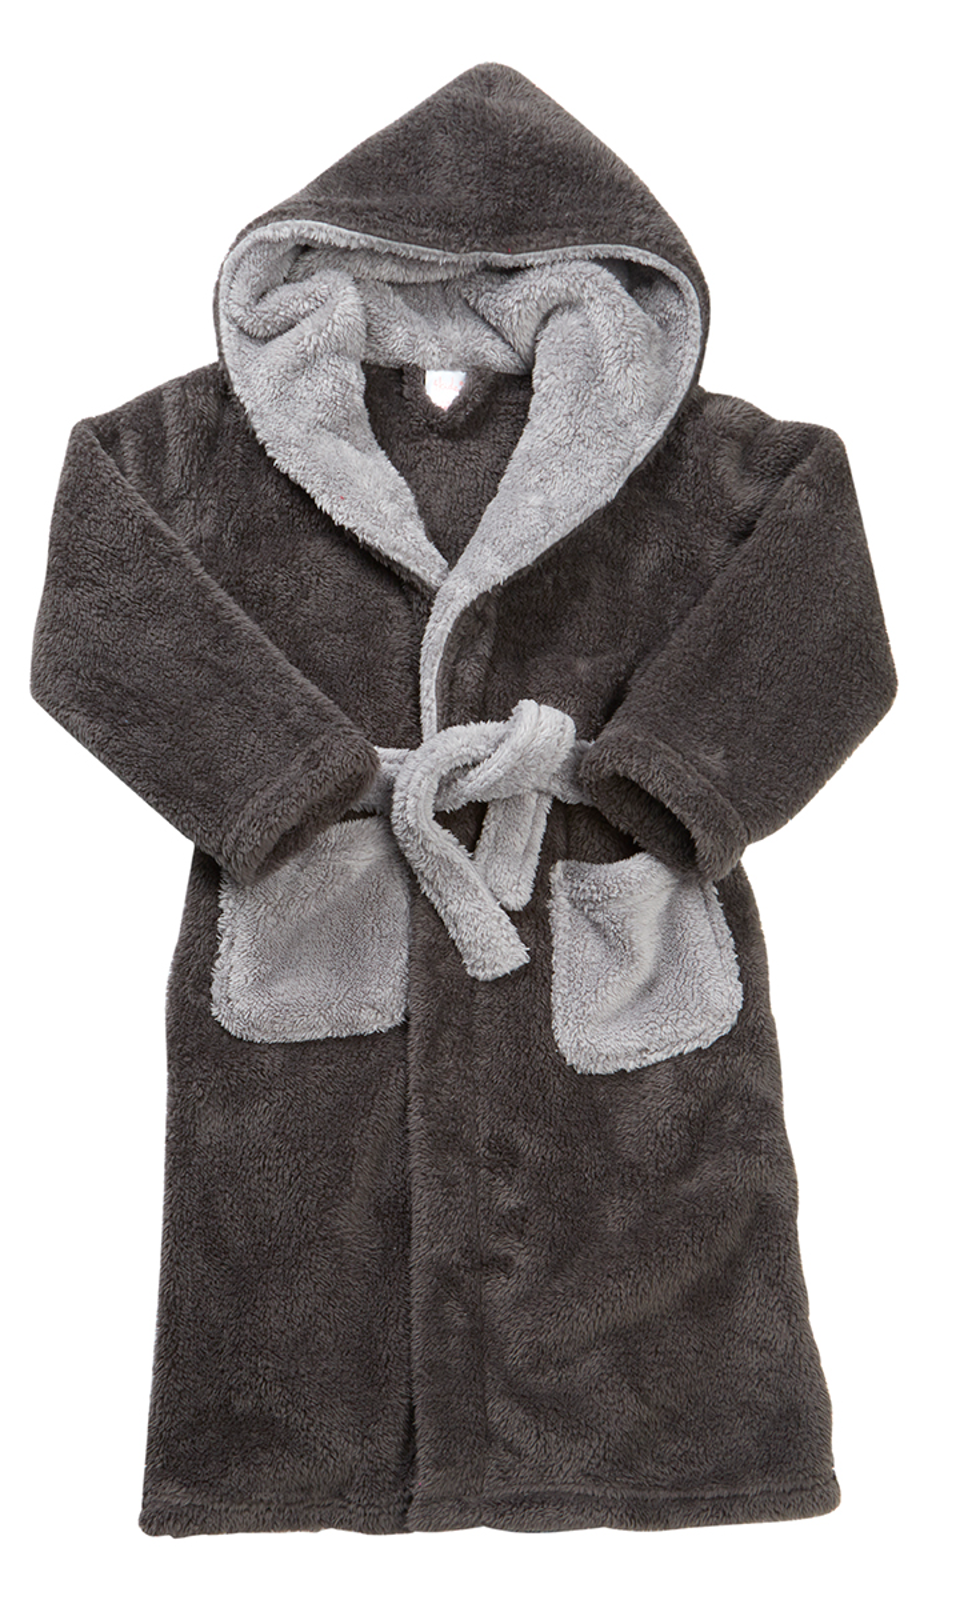 Shop for boys dressing gowns and robes at Next from the nightwear collections. Next day delivery and free returns available. Buy boys robes online now! Click here to use our website with more accessibility support, for example screen readers. 440v.cf